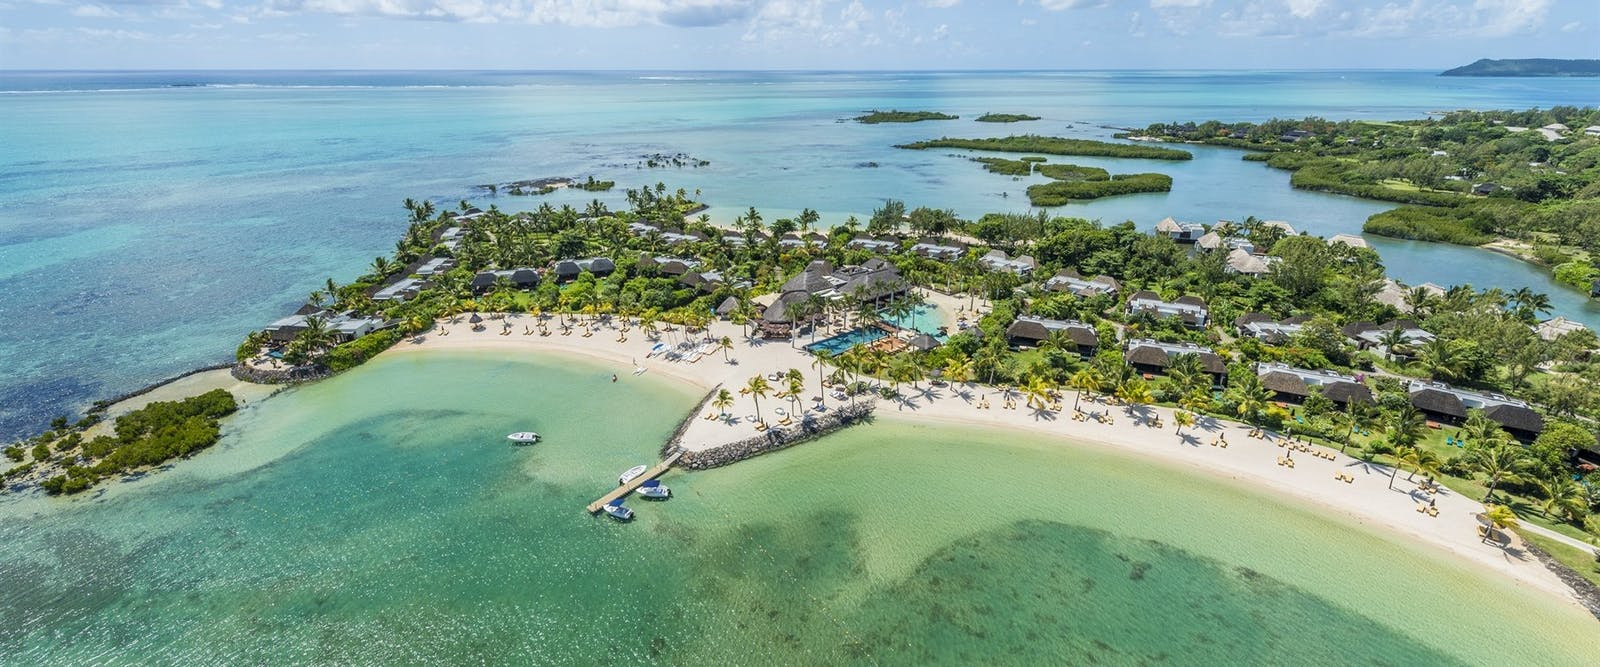 Aerial view of Four Seasons Resort Mauritius at Anahita